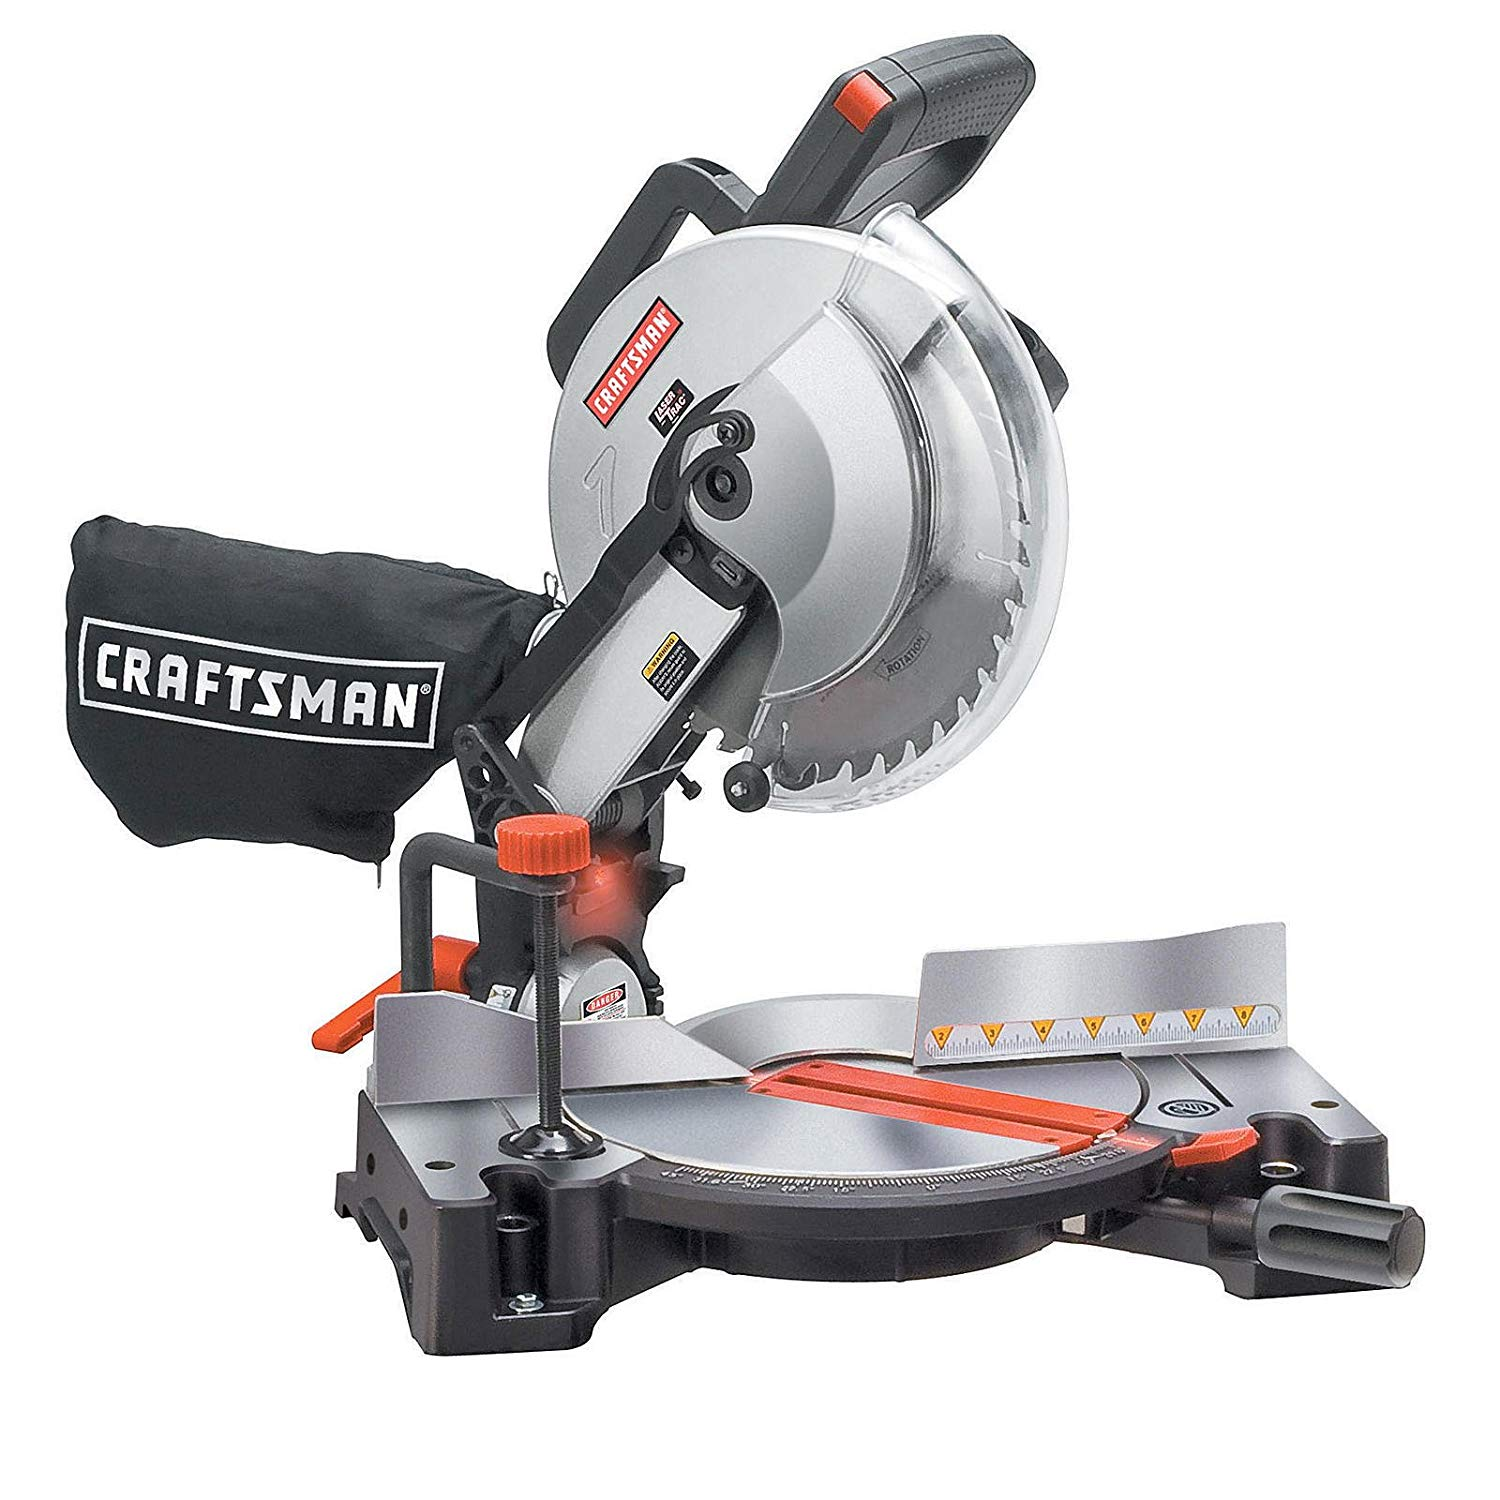 "Regarmans Craftsman 10"" Compound Miter Saw (21236) 40-T carbide tipped blade"